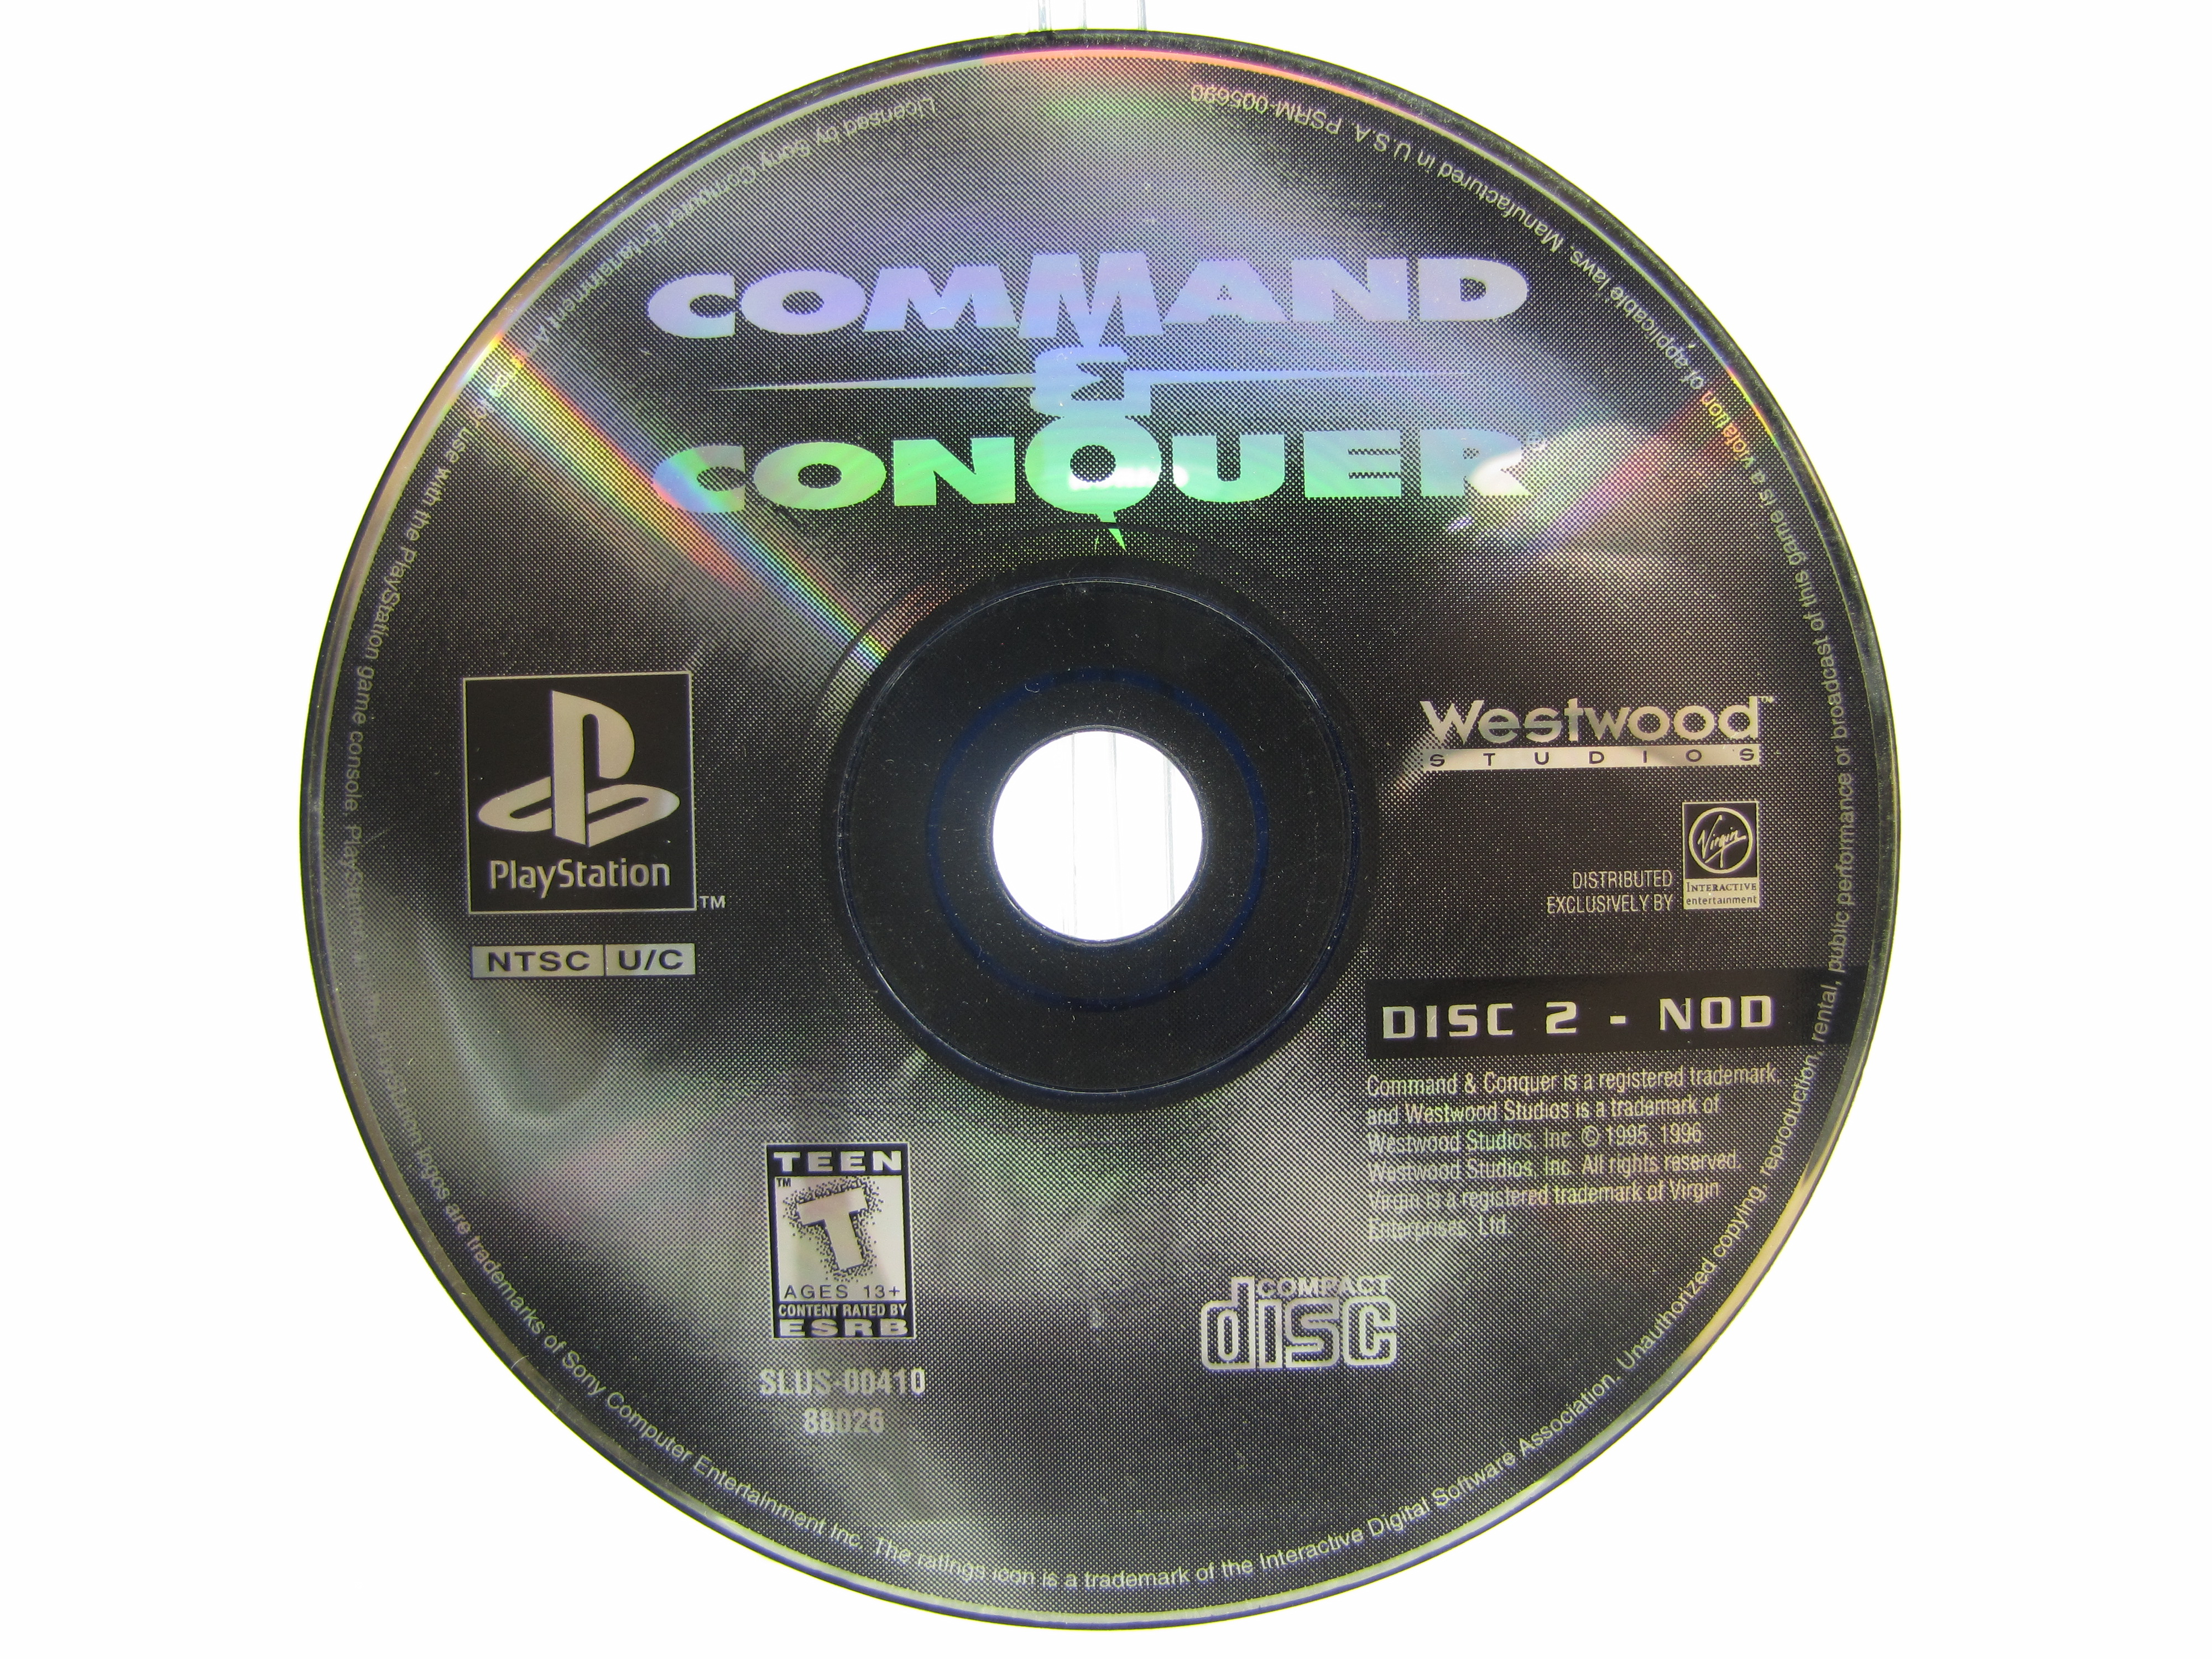 PS1 Command & Conquer Disc 2 Disc Only - 1995